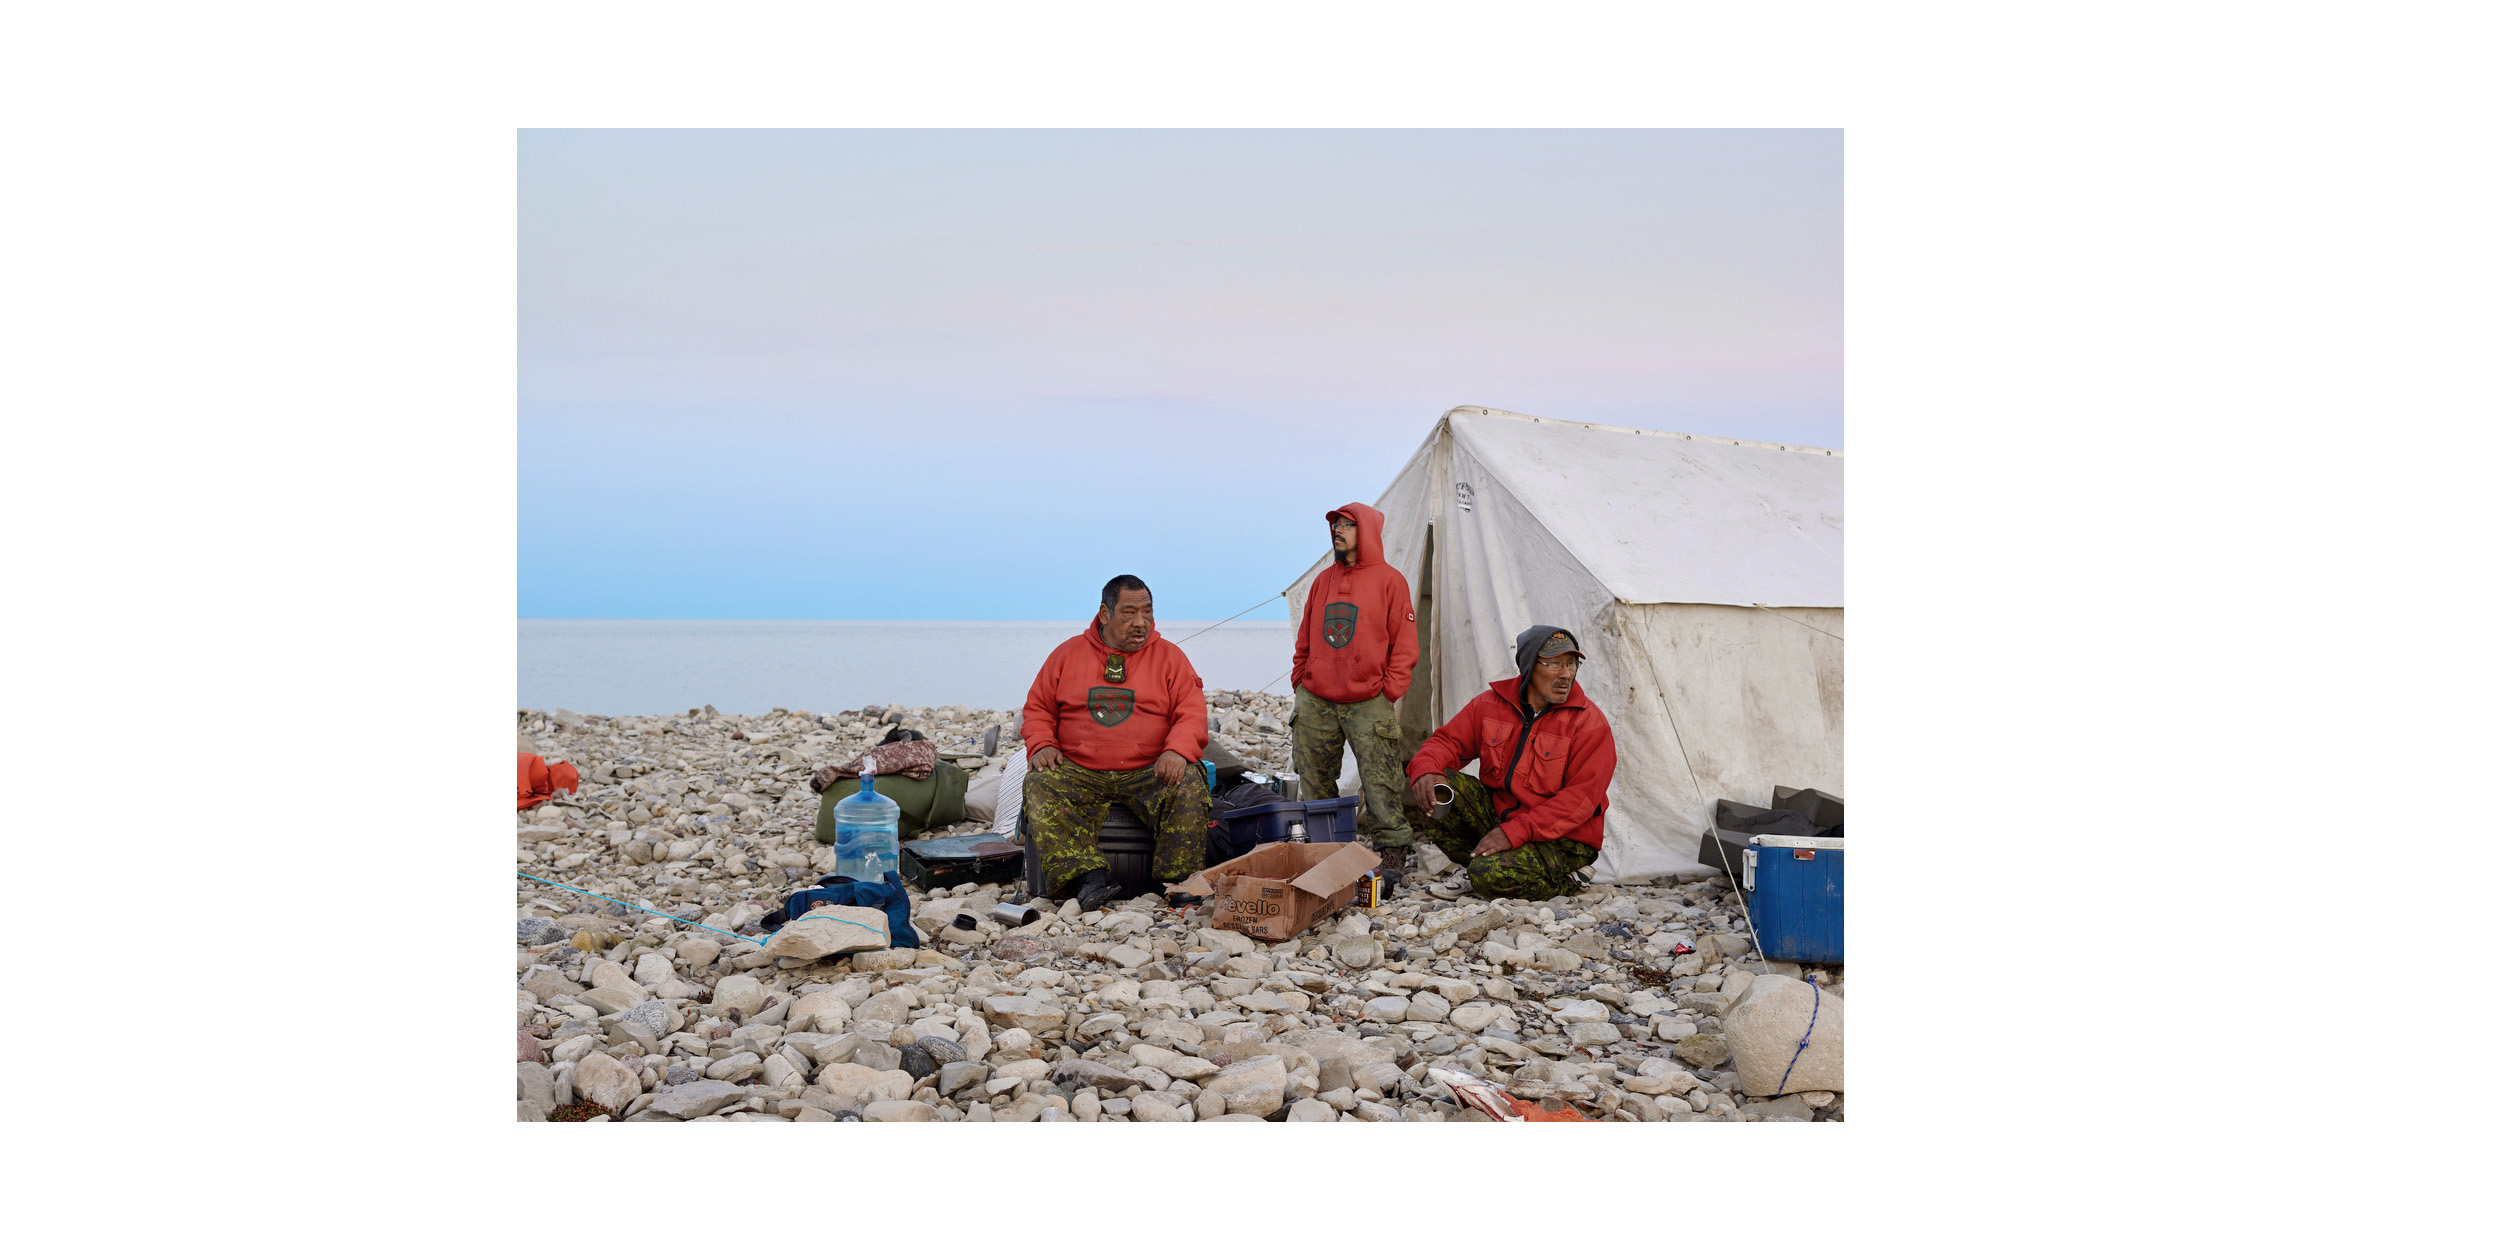 Rangers John and Steven Ukuqtunnuaq and Simon Tucktoo, King William Island, from the series 'Arctic Front'